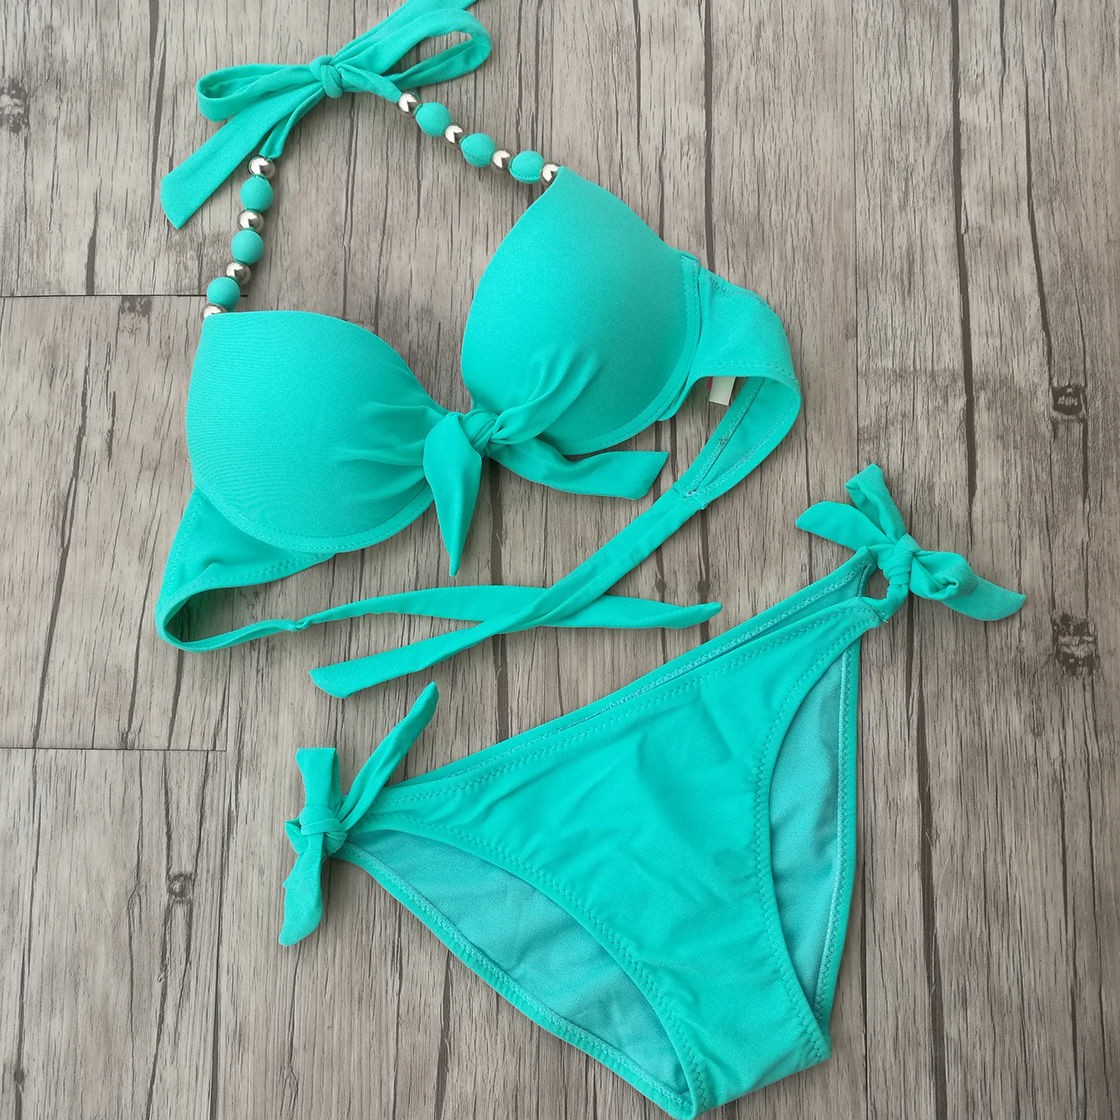 Full Real Women Green Bikini push up big Breast CUP swimsuit swimwear female high elastic Brazilian style  bikinis Set breast light detection device for the breast cancer self check up and breast clinical examination